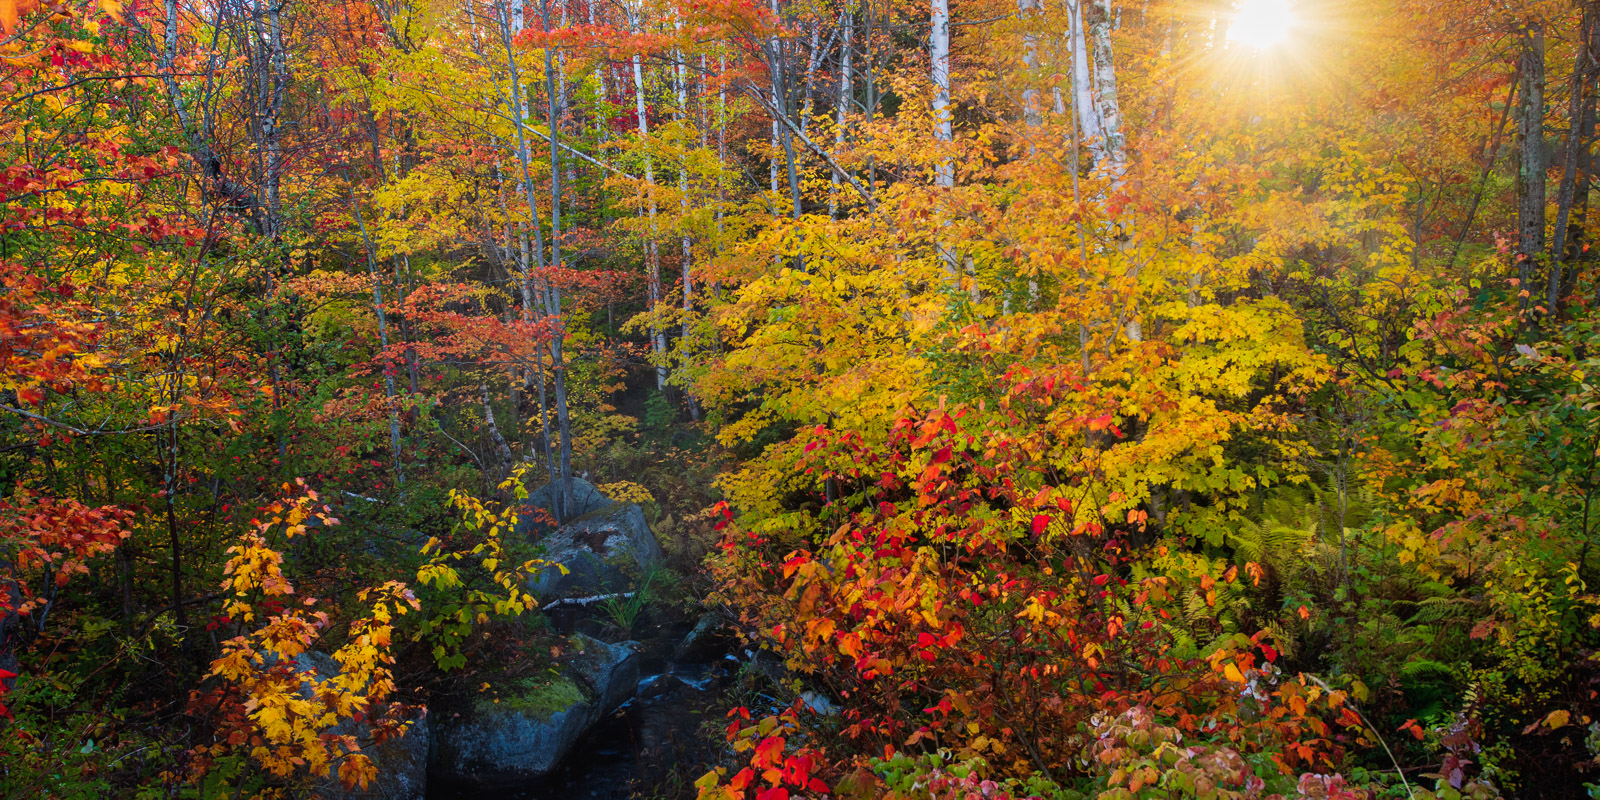 Autumn color in Vermont's Groton State Forest.